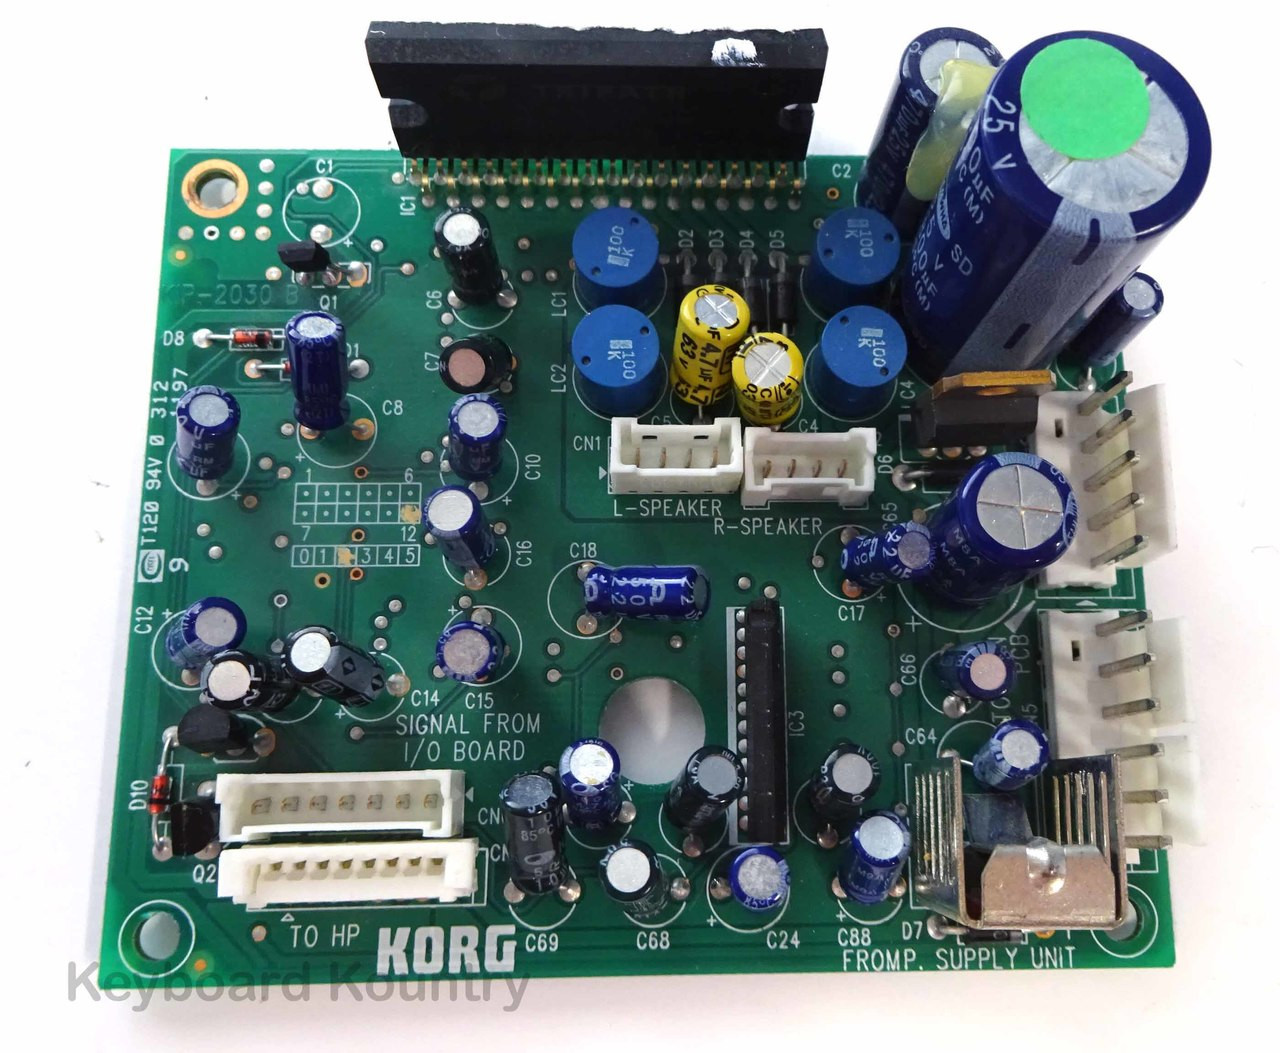 Korg Wiring Diagram Explained Diagrams Maxon 280253 Pa80 Power Amp Schematic Best Site Harness House